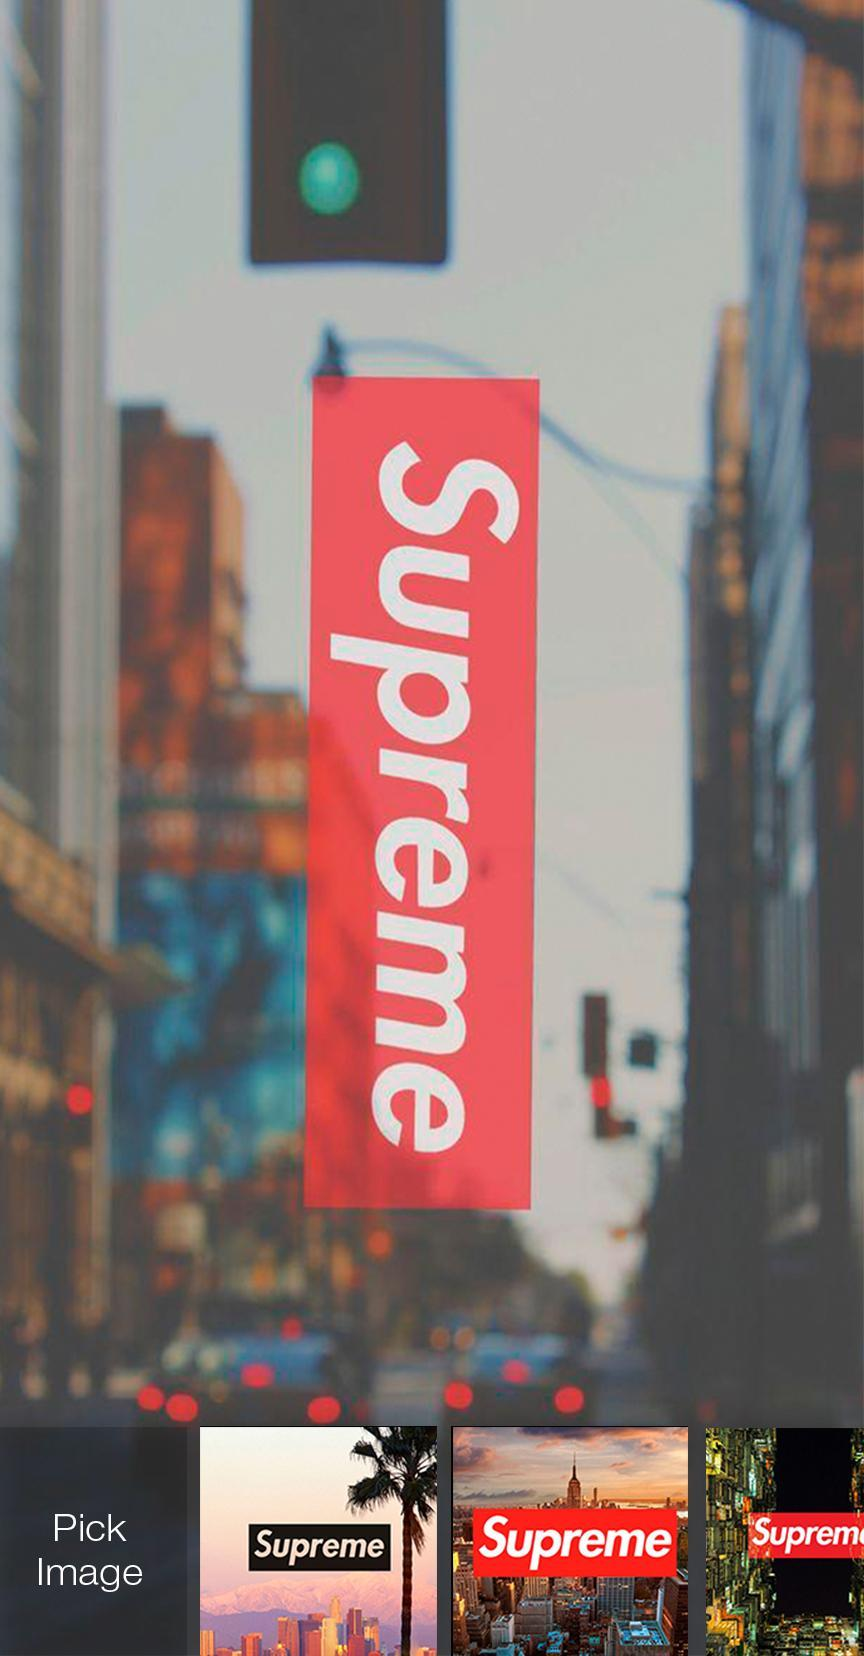 Supreme Bape Countdown Wallpaper Lock Screen For Android